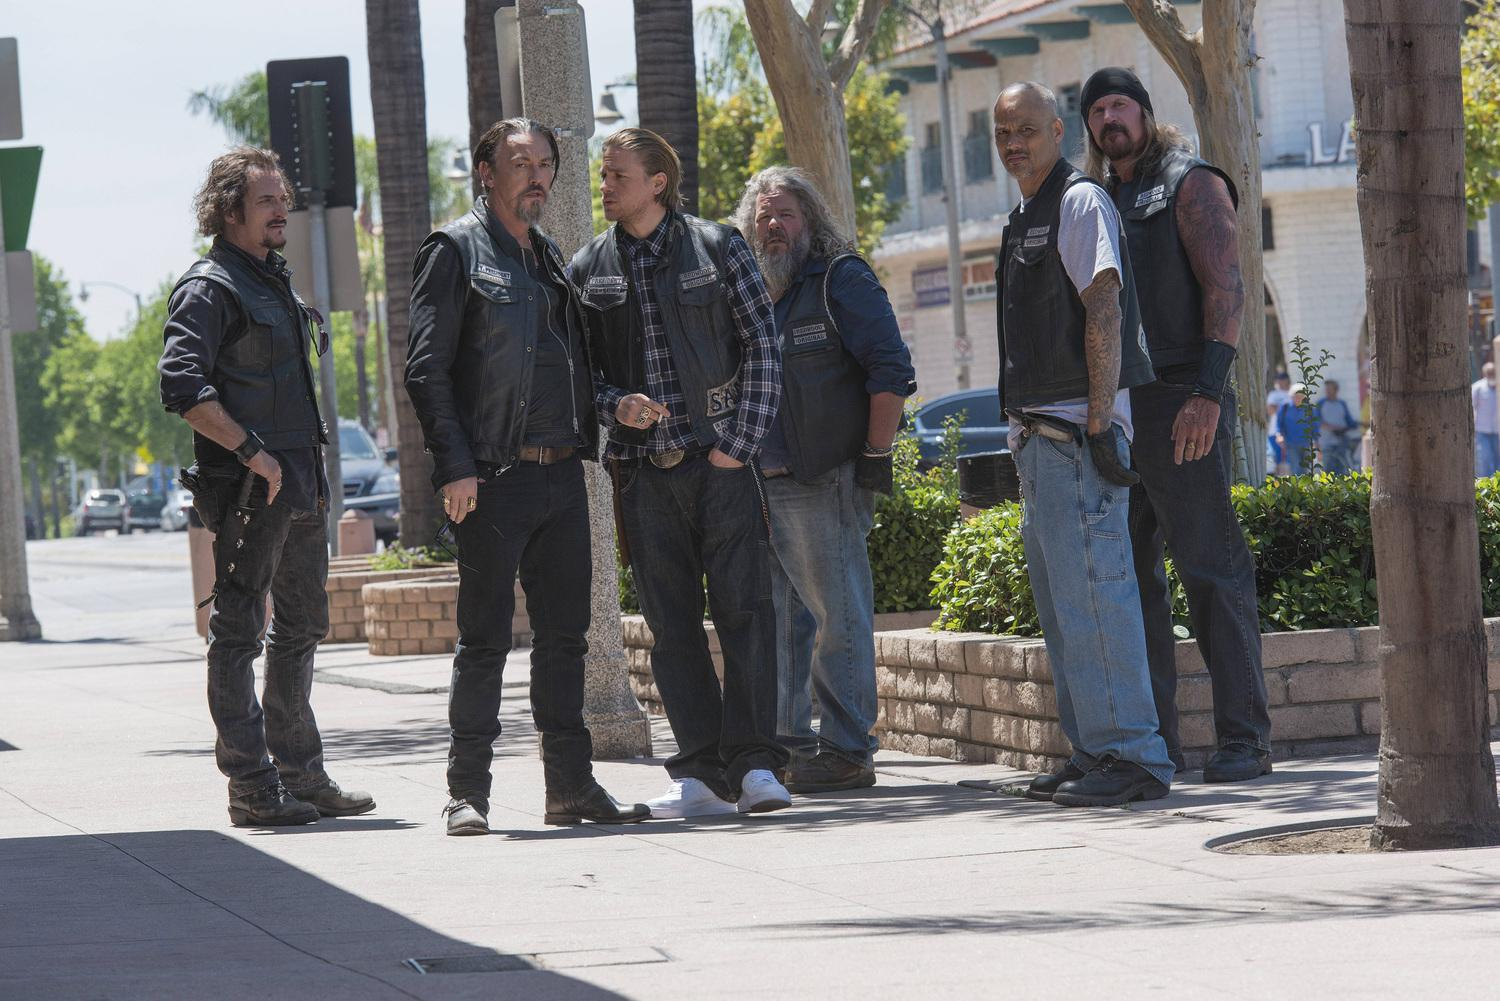 Sons of Anarchy Season 2 spoilers